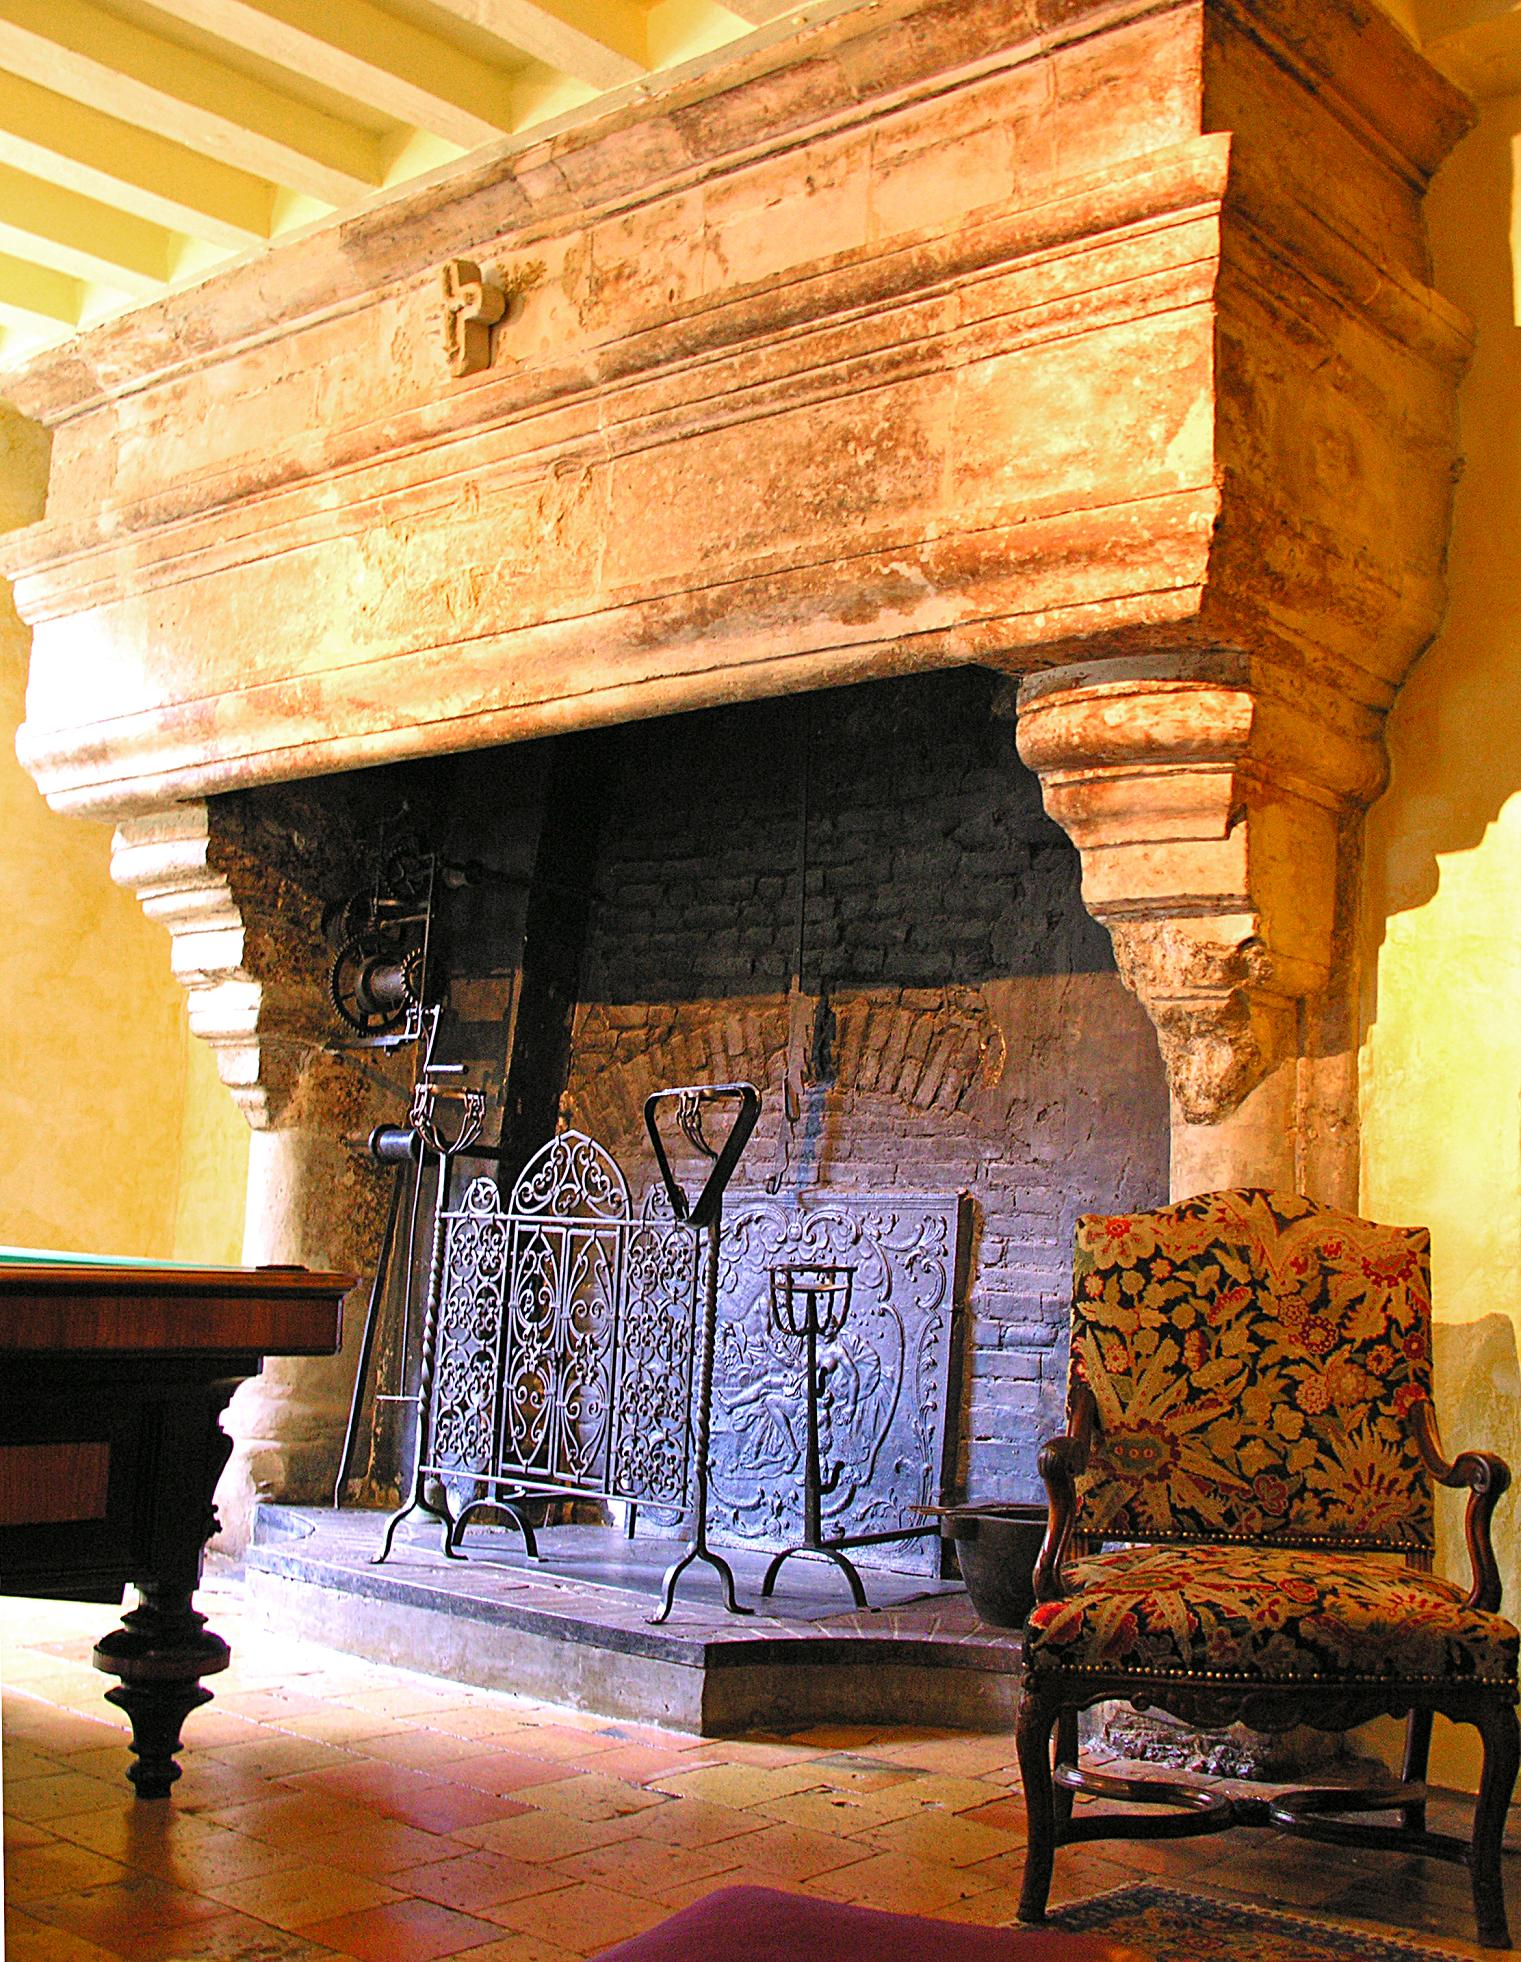 fireplace-chateau-barre-hotel-vanssay-loire-france